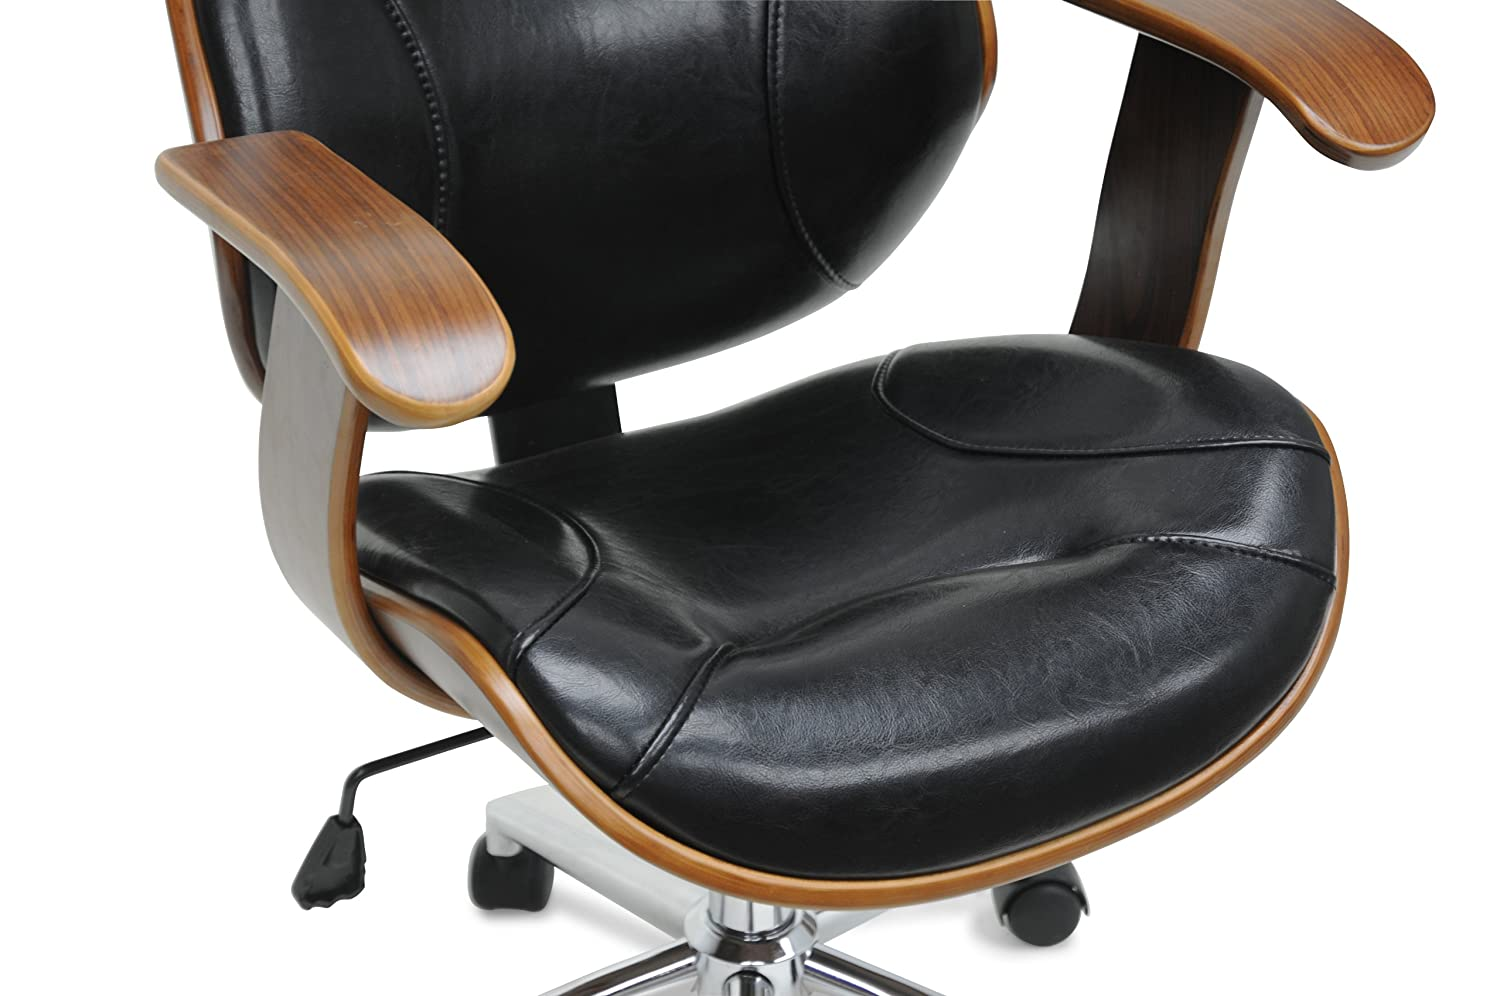 chairs office room chair executive modern ergonomic furniture for